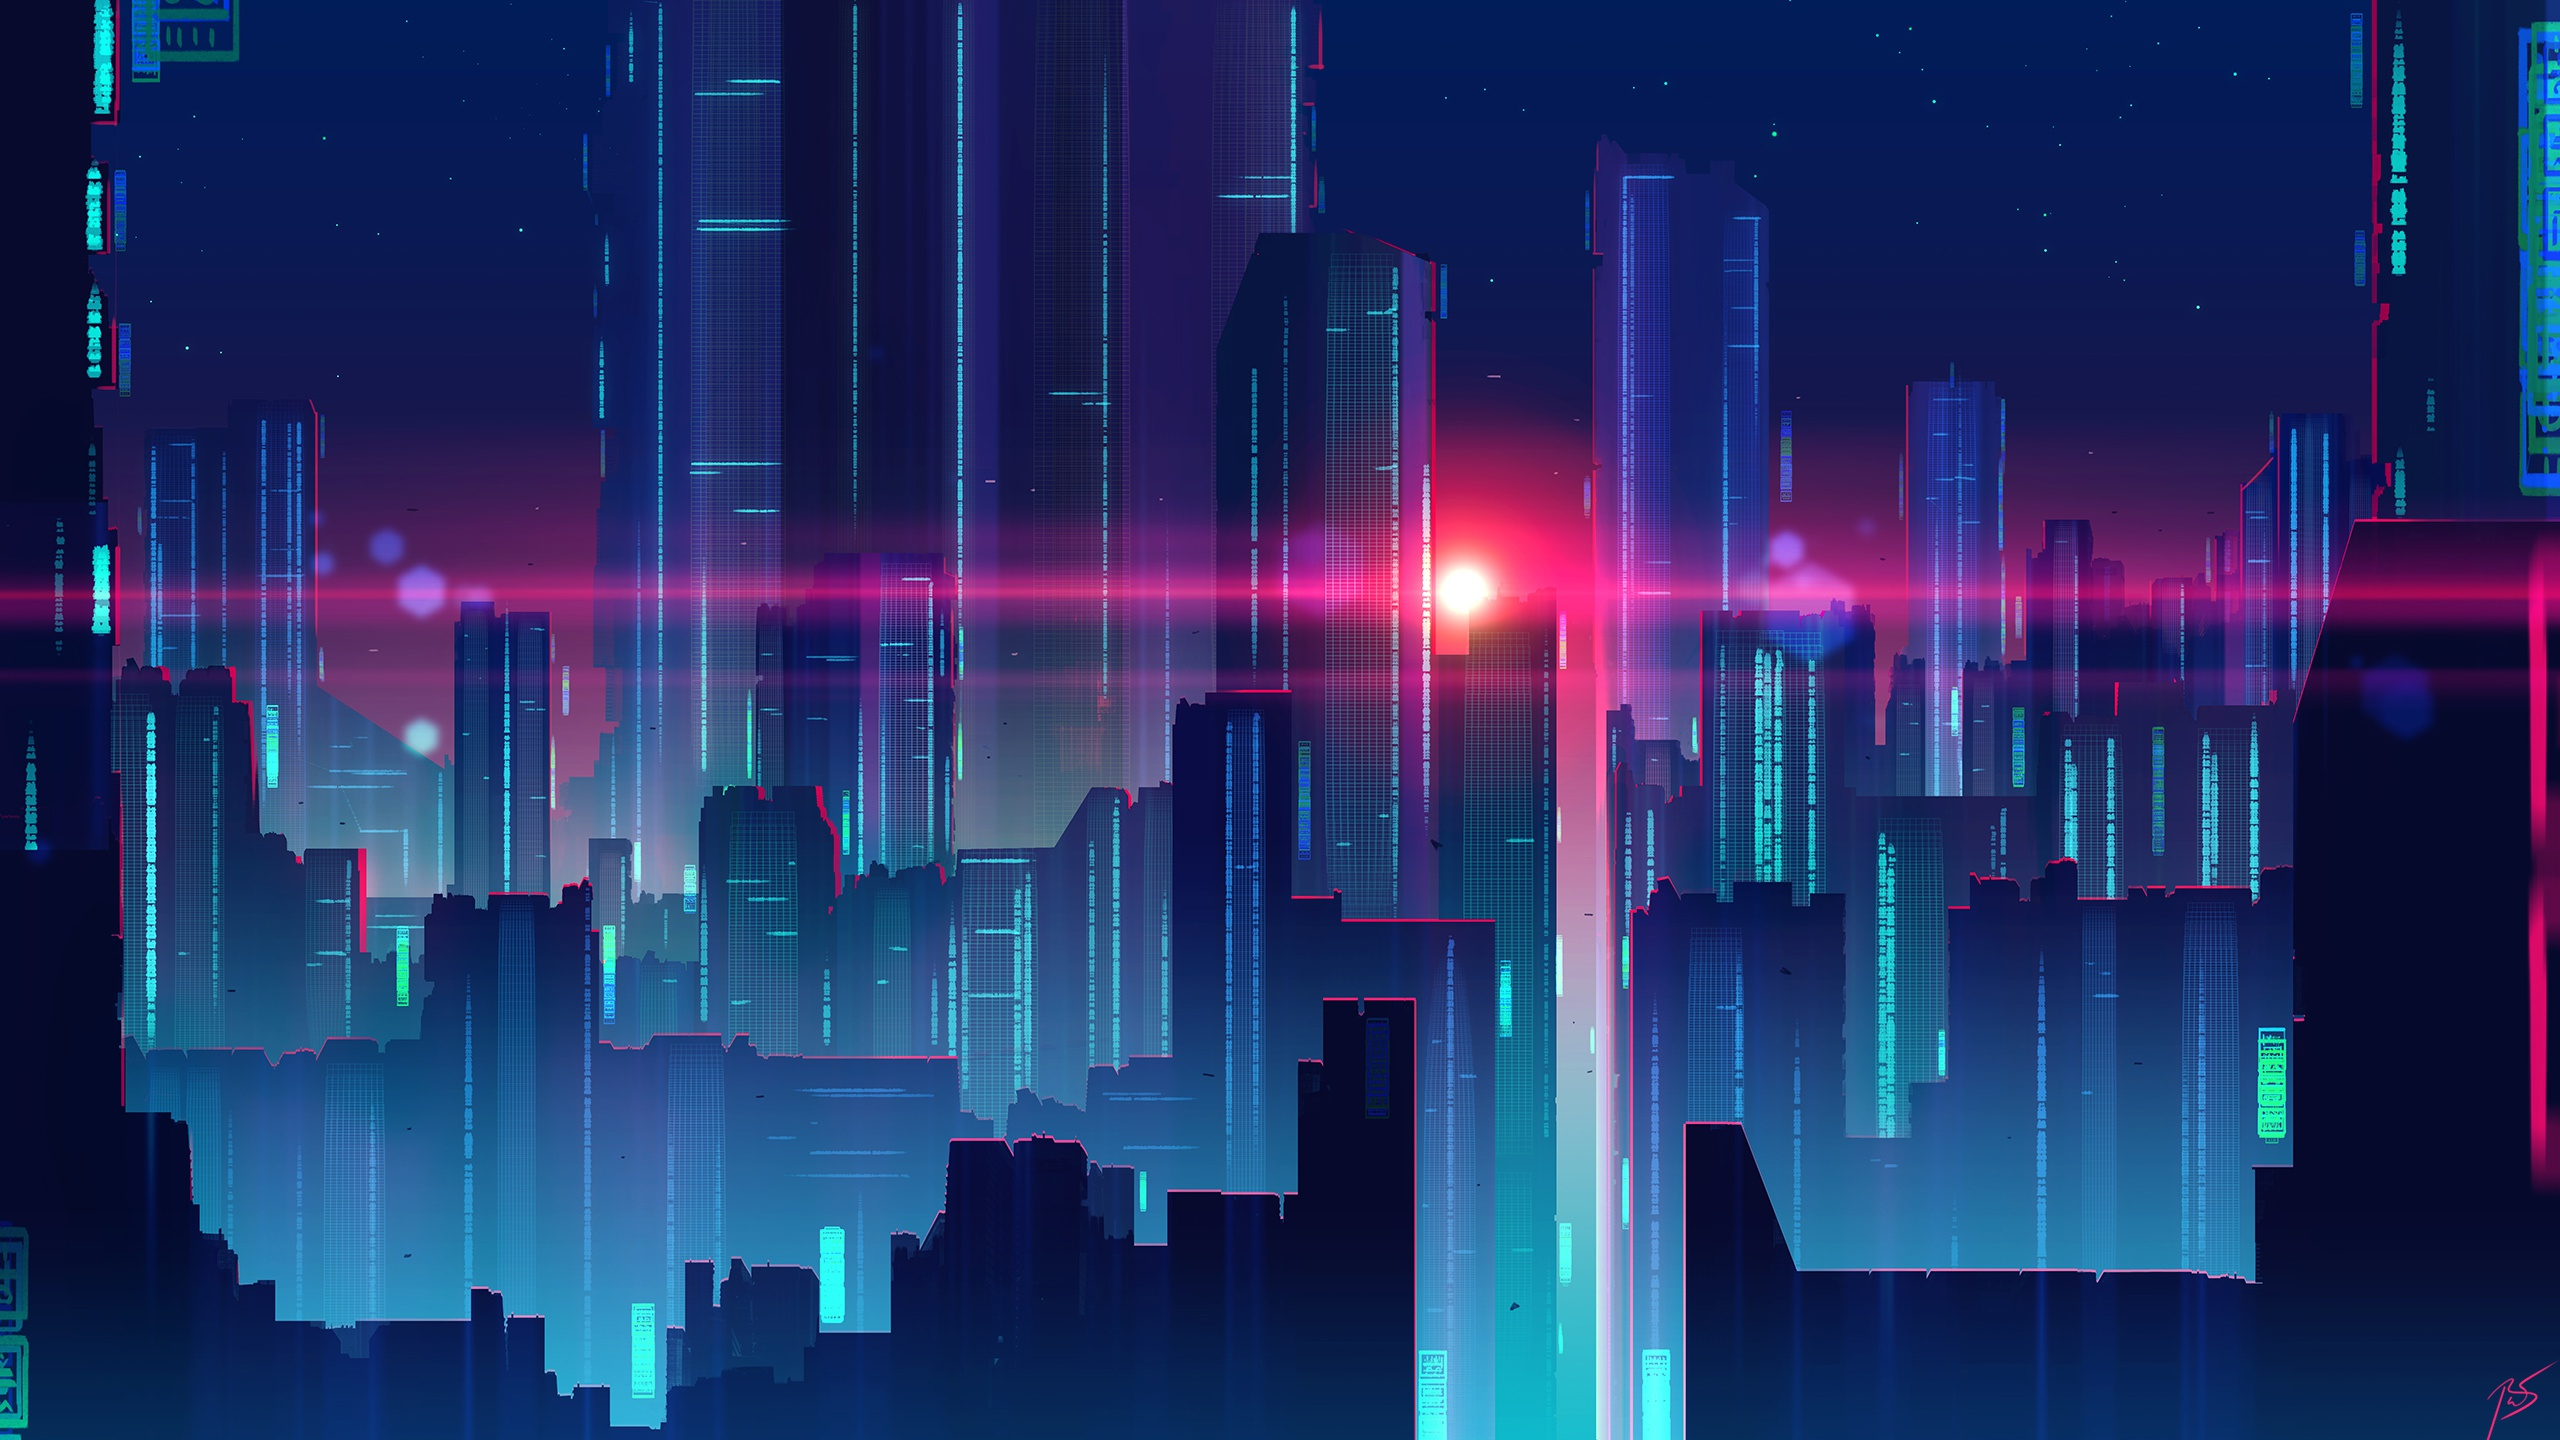 Wallpaper Synthwave By Joey Jazz Skyscrapers Houses Cities 2560x1440